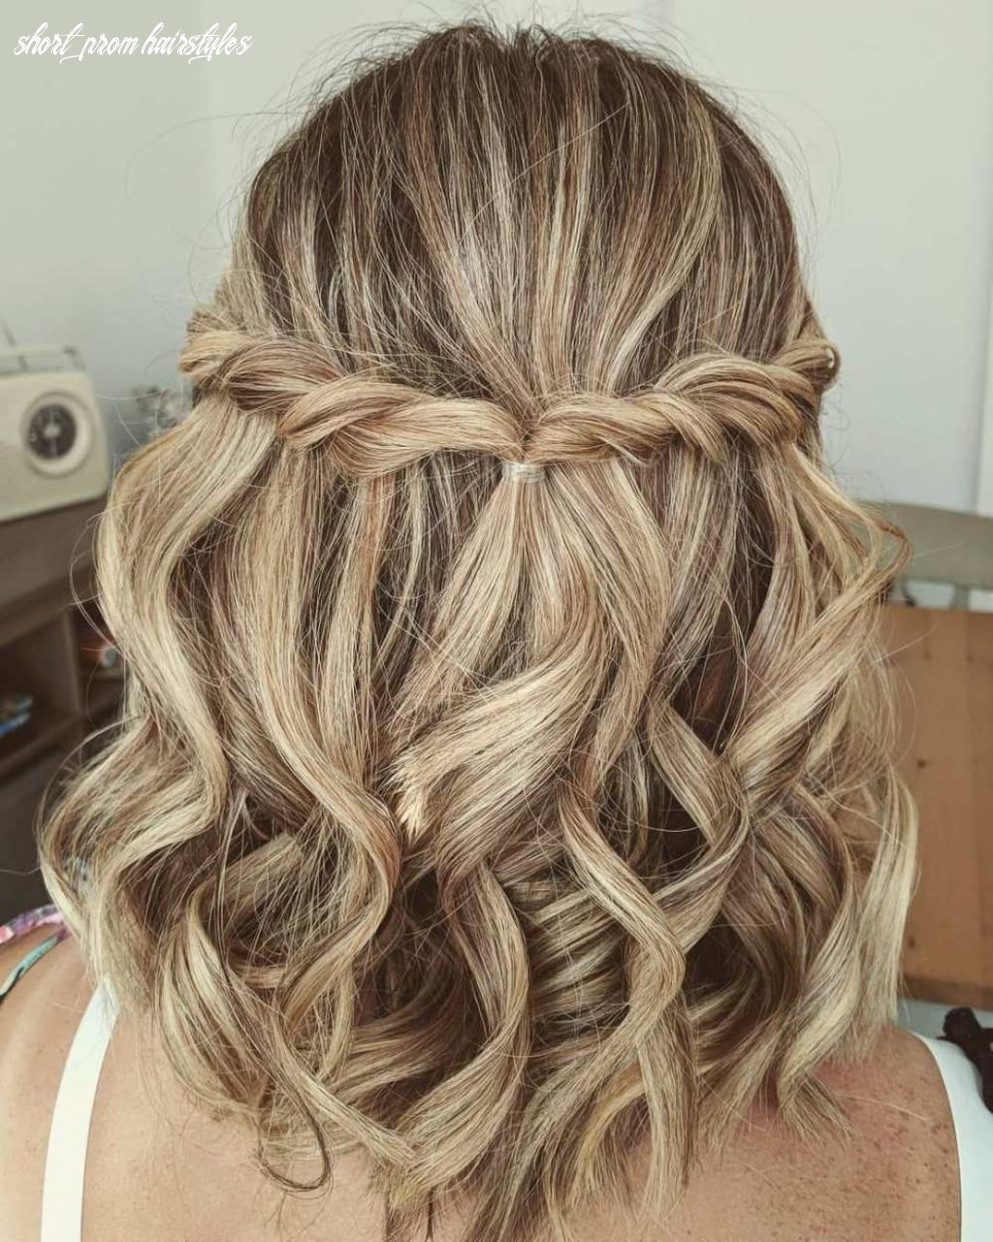 9 newest short formal hairstyles ideas for women   cabelo curto